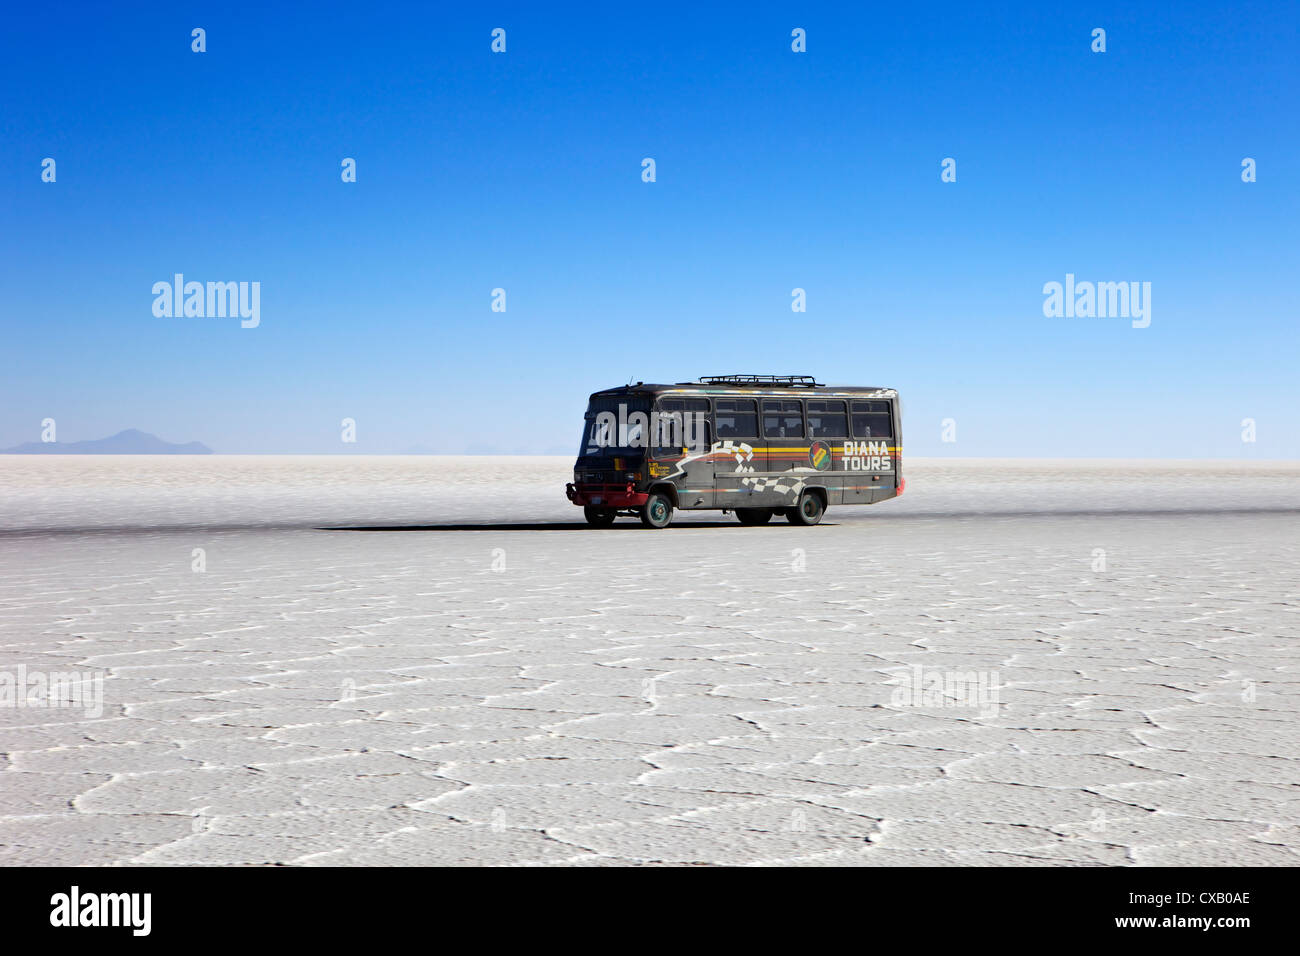 Bus on Salar de Uyuni, the largest salt flat in the world, South West Bolivia, South America - Stock Image